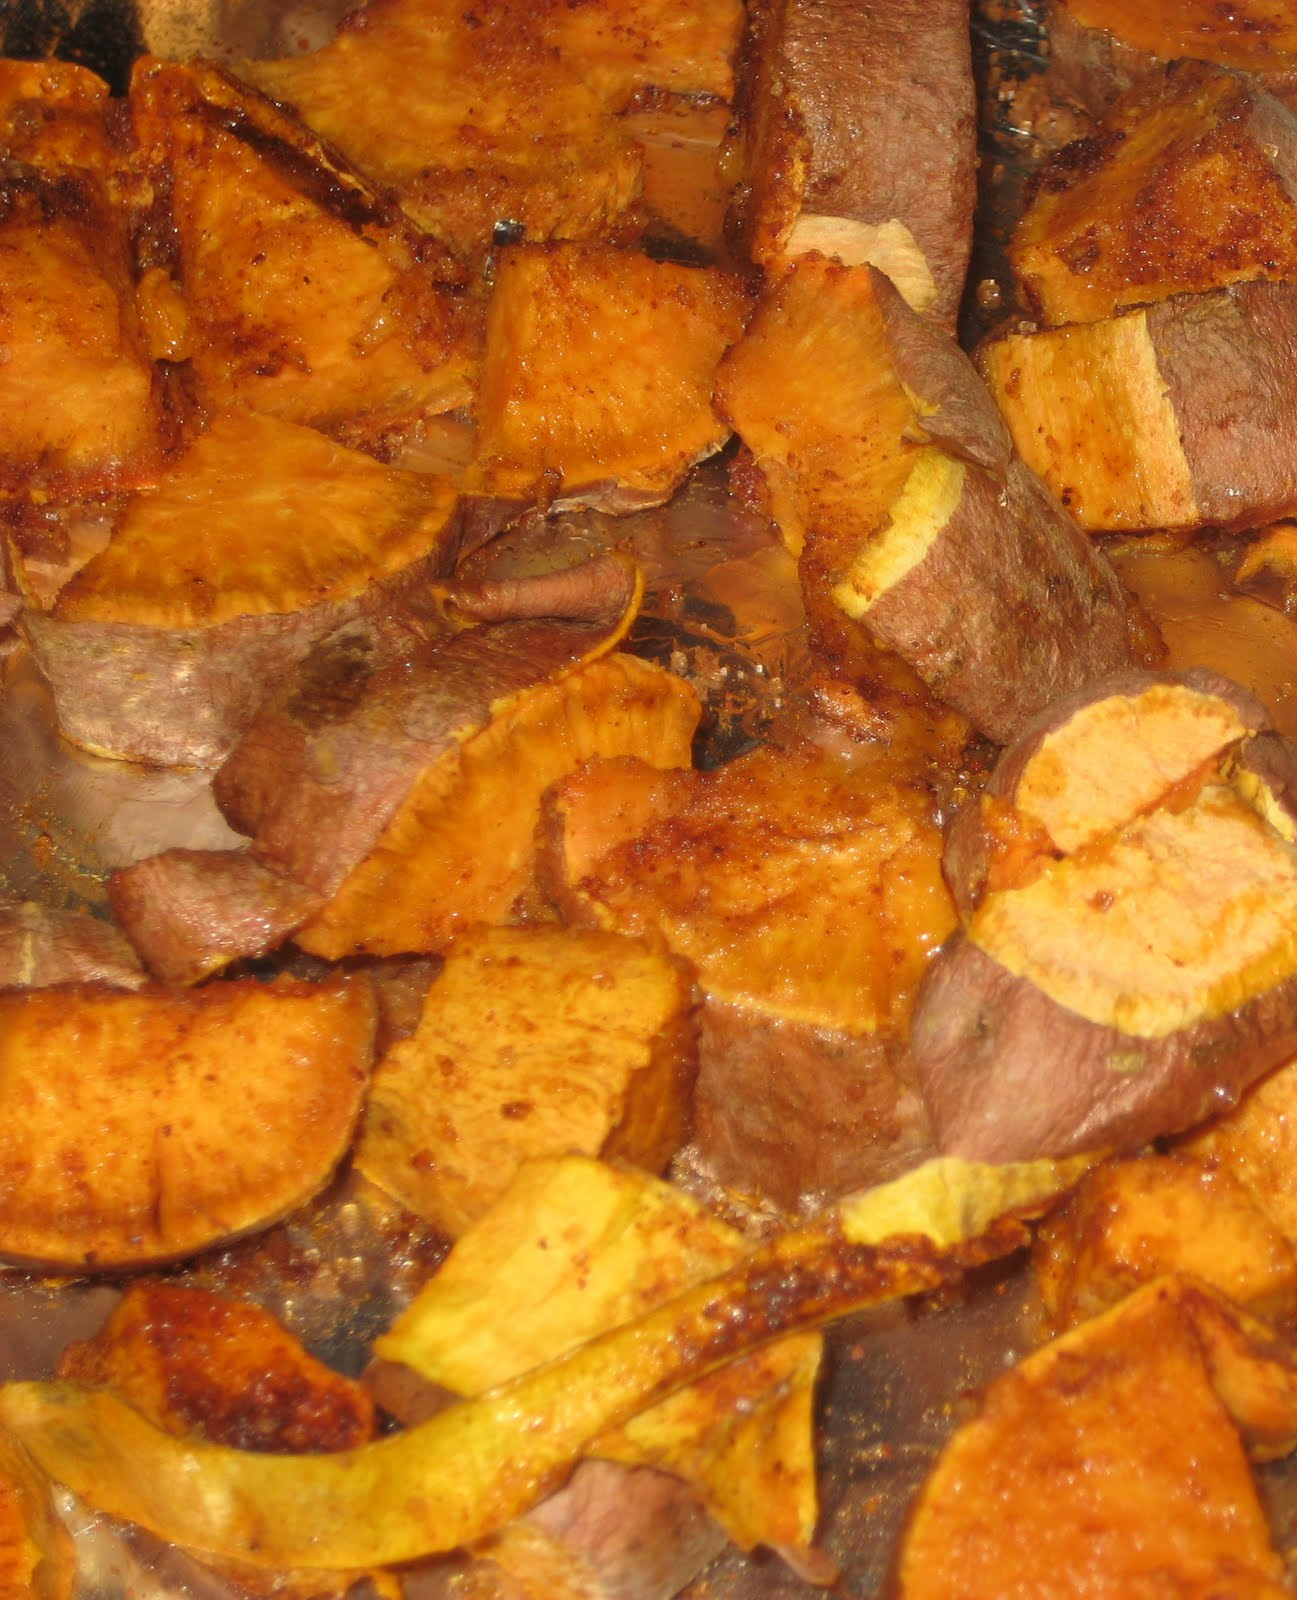 21st Century Urban Pioneers: Chili-Rubbed Roasted Sweet Potatoes